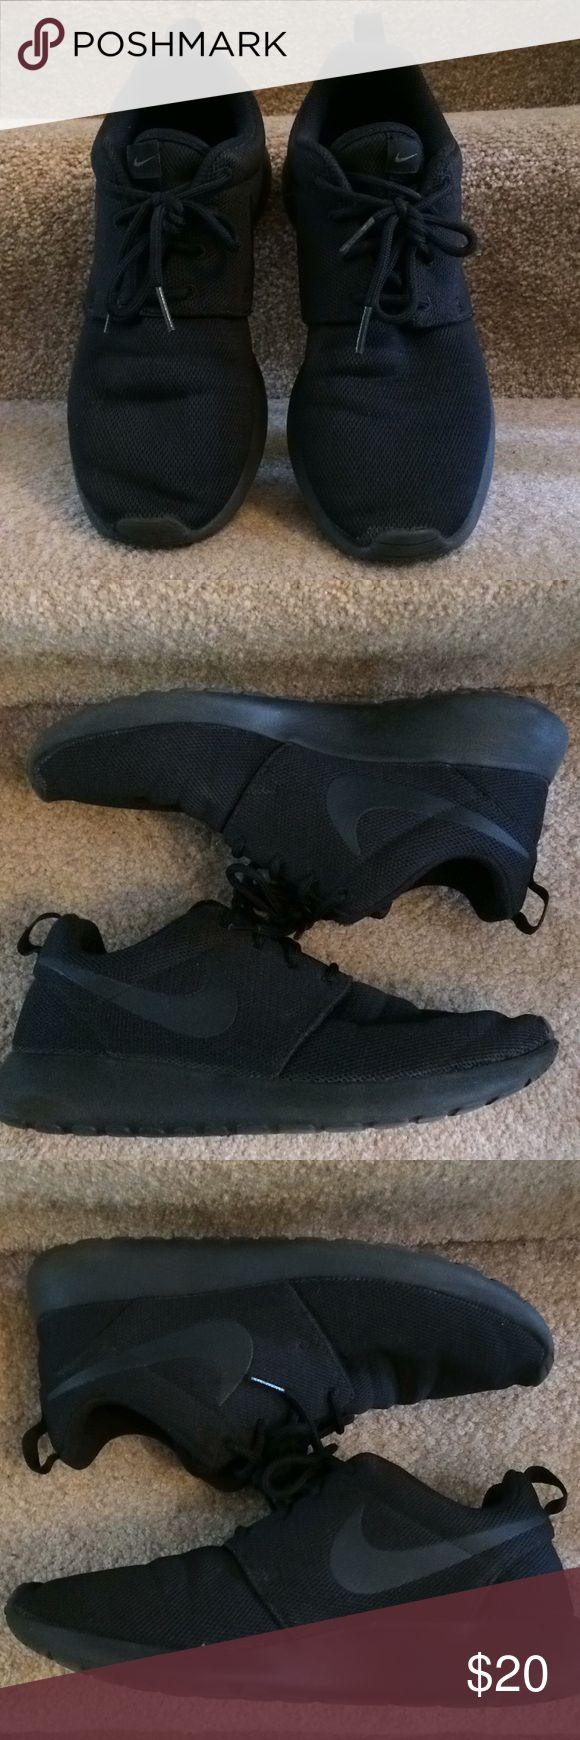 Nike Roshe Black size 8 Black logo on black. Worn once. Mended hole in top of right shoe (I fell over!) otherwise like new! A lot of wear left in these shoes. Nike Shoes Athletic Shoes